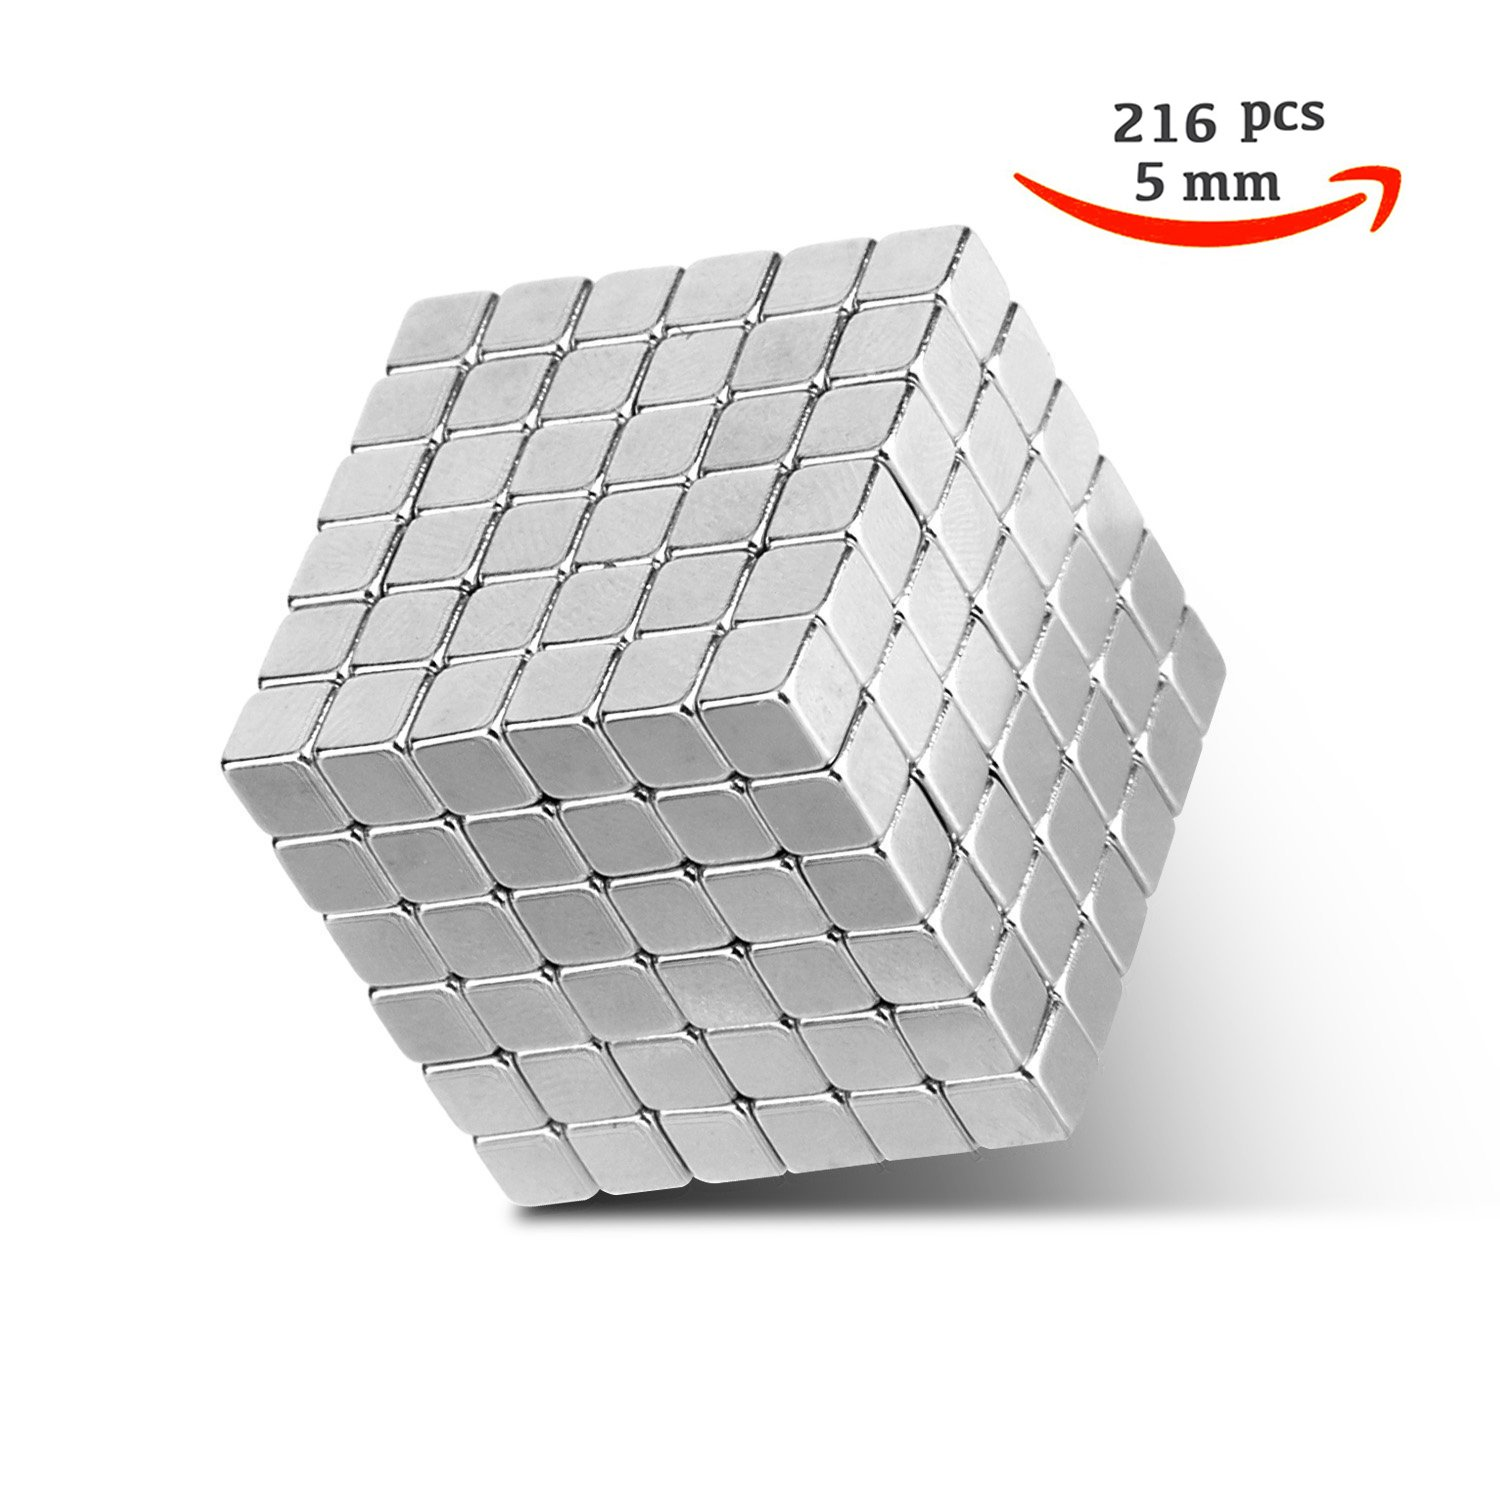 Magnetic Holders Multi-Use Square Cube Magnets Toy Puzzle Magnet Block Magic Cube Education Toys Metal (216 Pack)